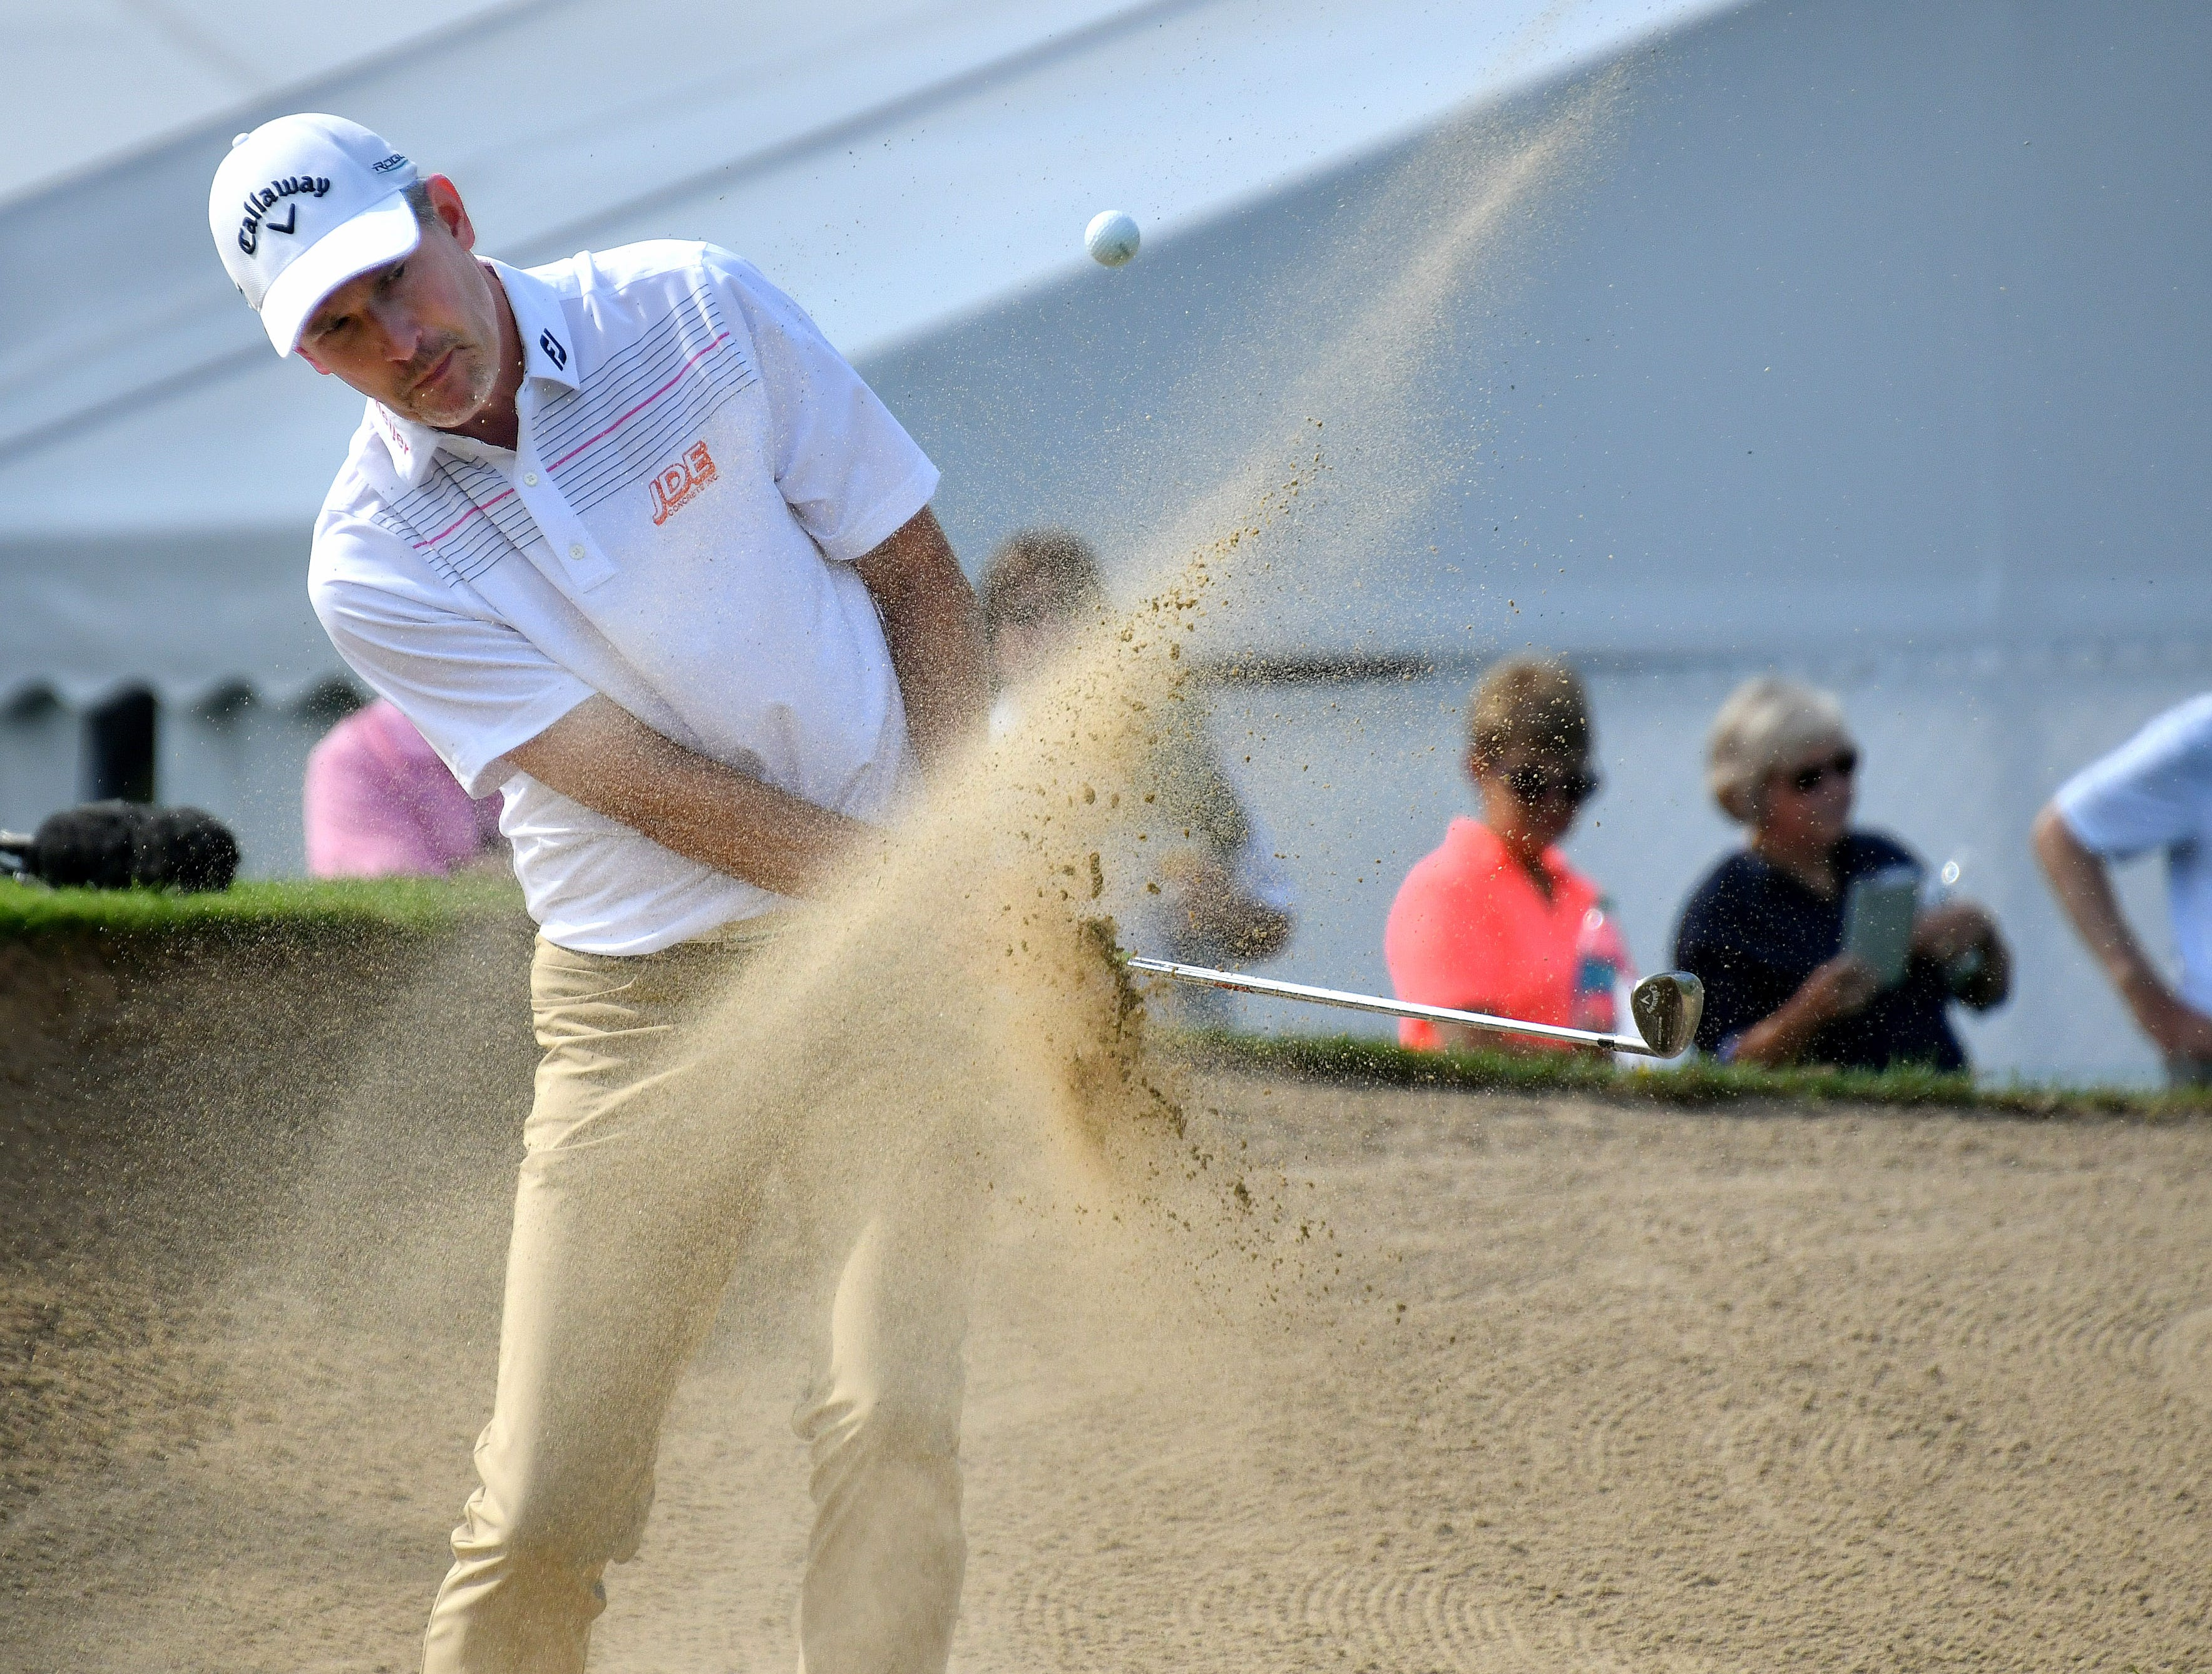 Grandville Michigan's Tom Werkmeister blasts out of the bunker on the ninth hole.